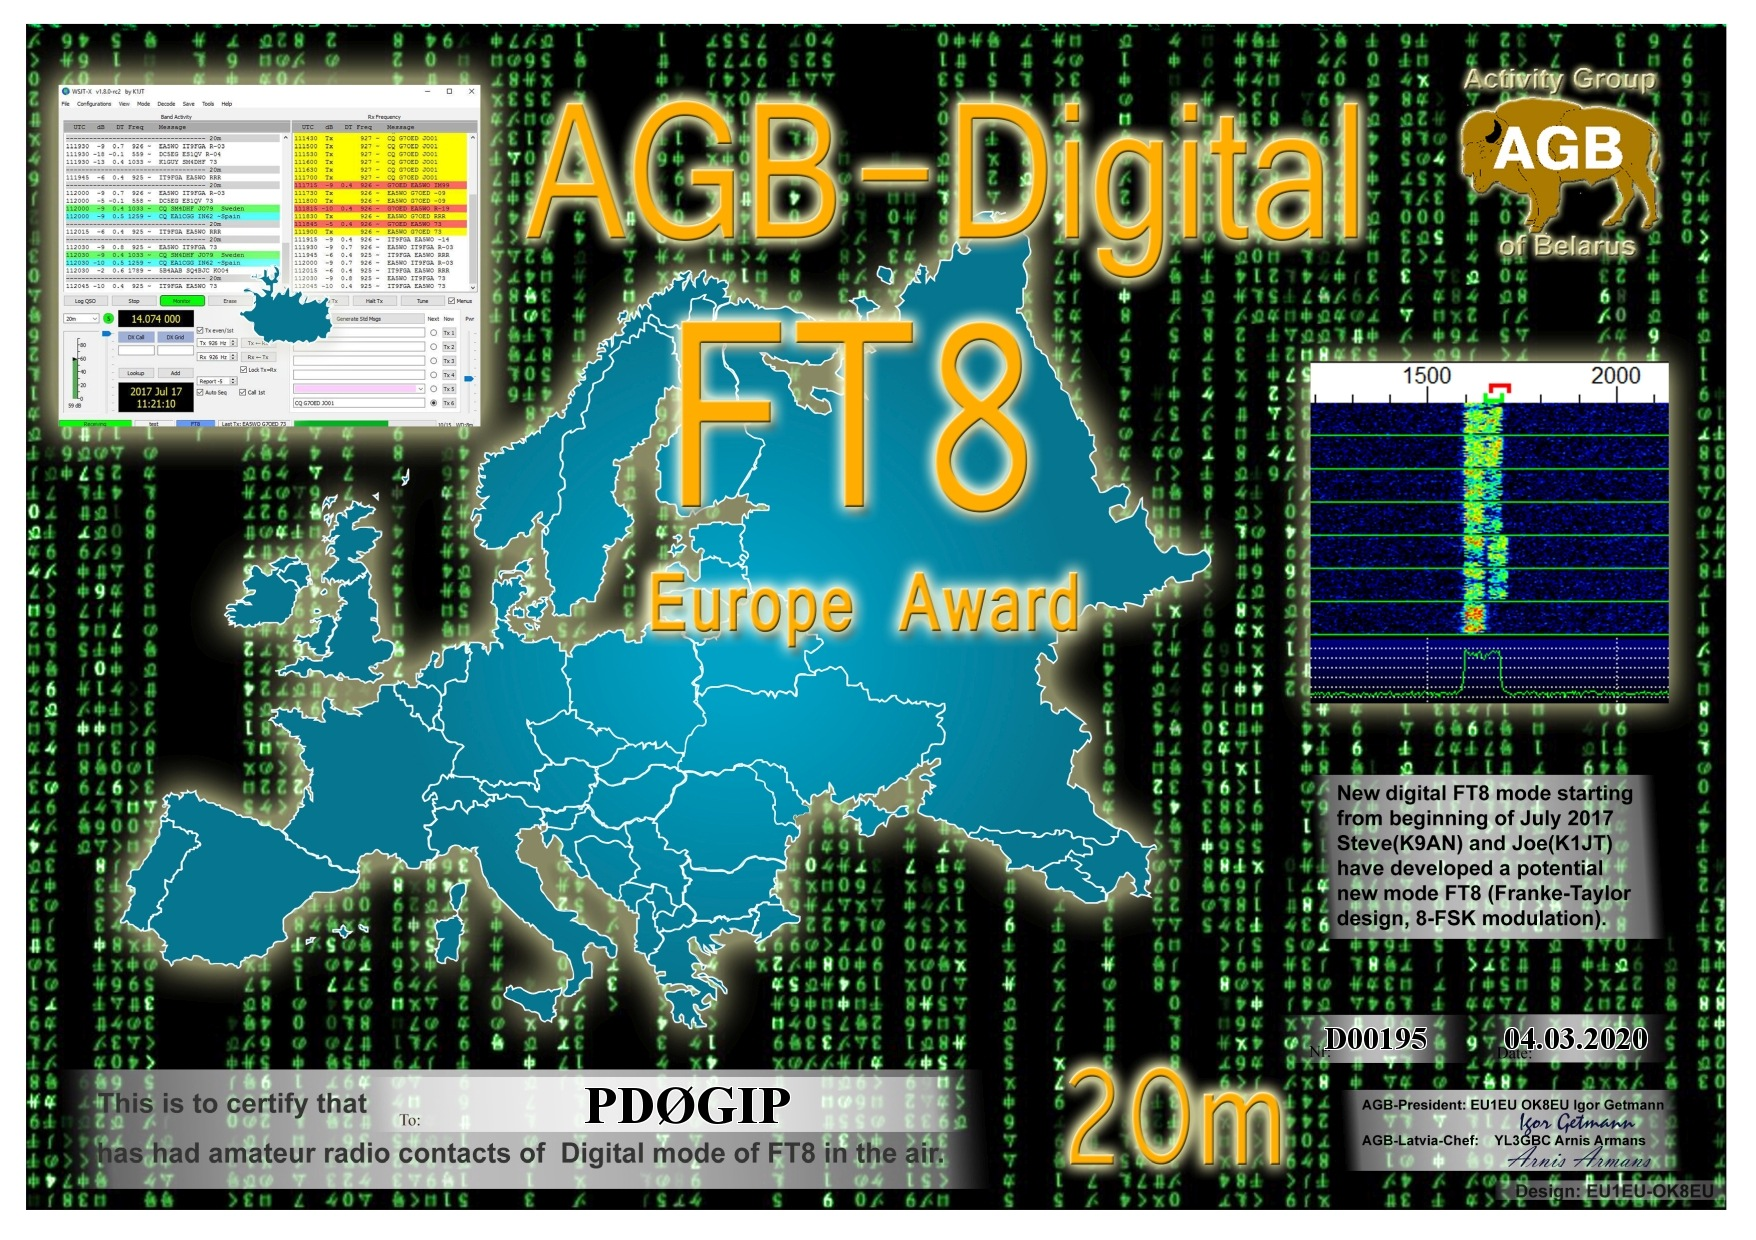 PD0GIP FT8 EUROPE 20M AGB